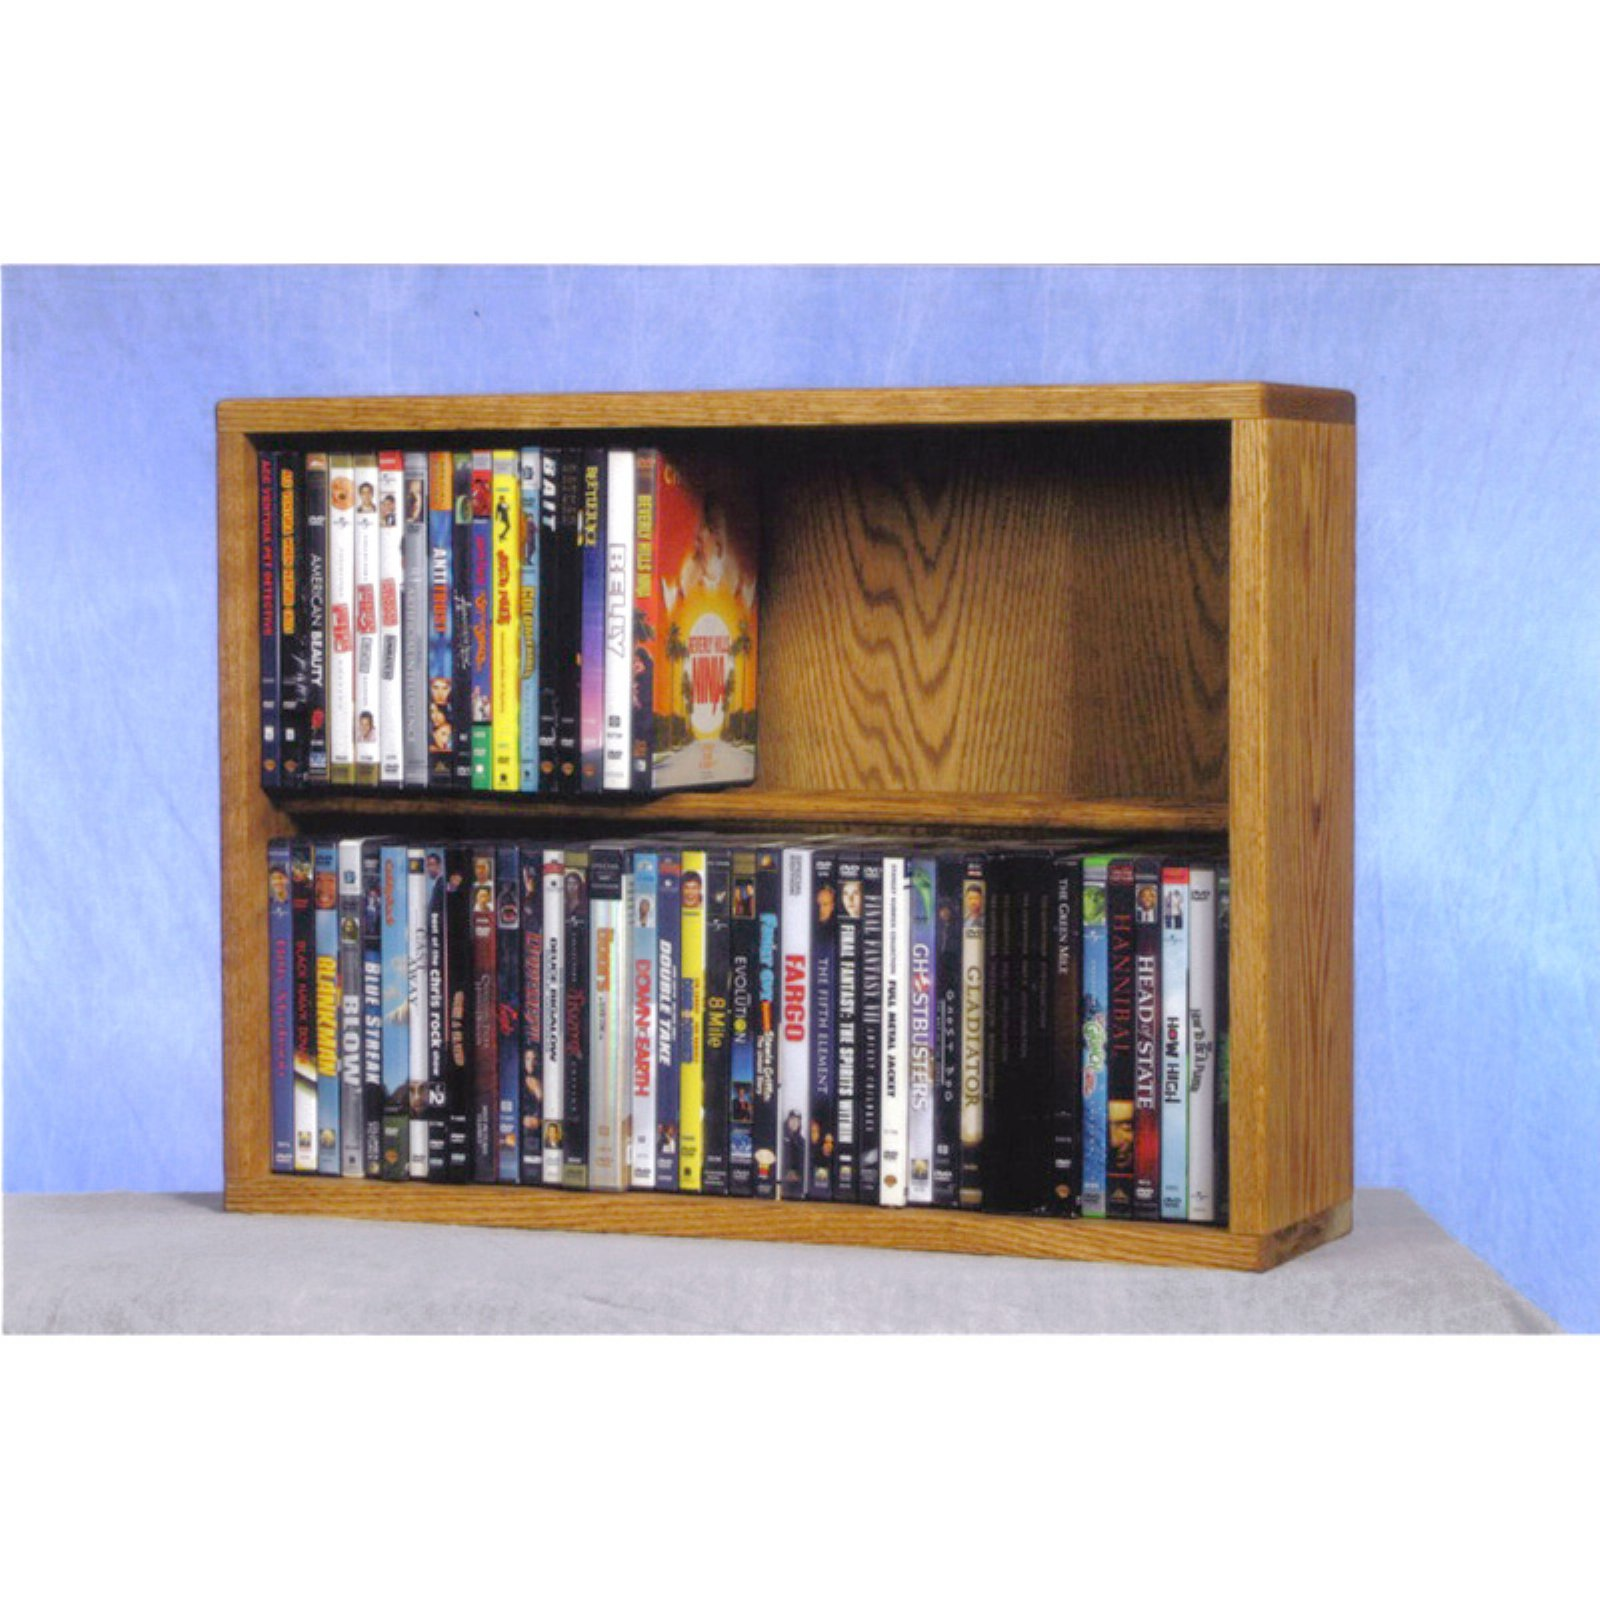 The Wood Shed Solid Oak 2 Row Dowel 80 DVD Media Rack by The Wood Shed